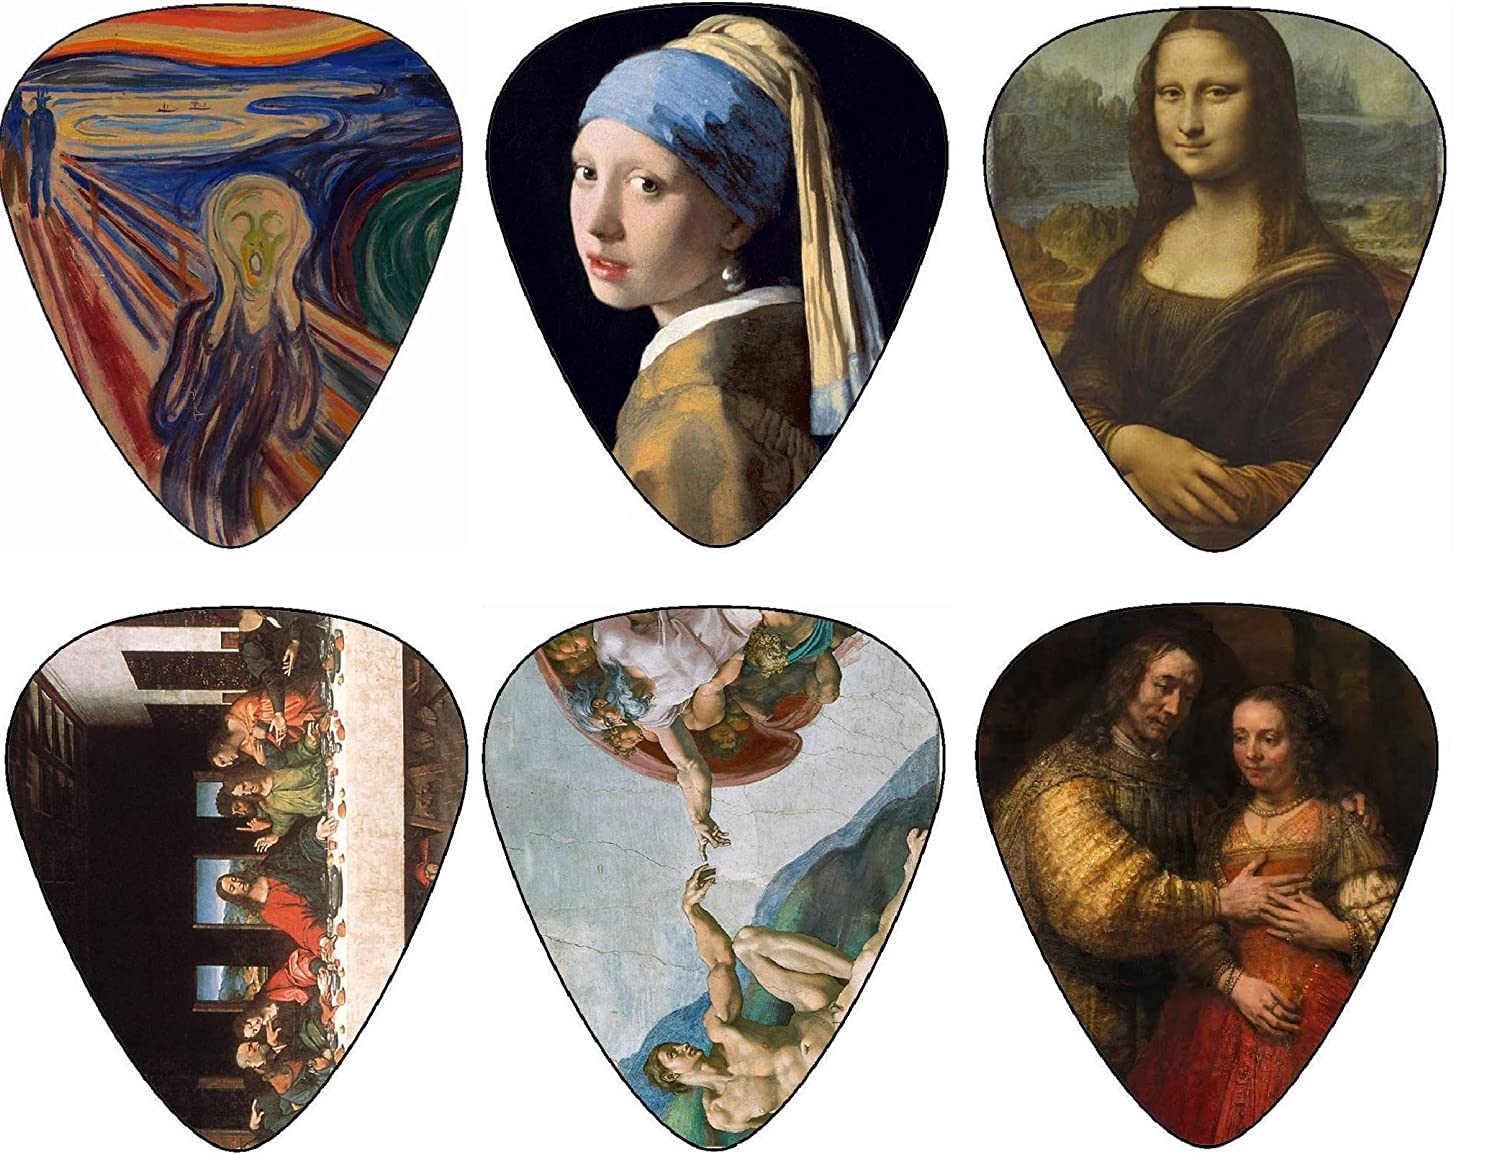 Guitar Picks, Cool Renaissance Art Medium 12 Pack Celluloid, Leather Keychain Pick Holder Included, Premium Gift Set. Have u Ever Played Your Electric, Acoustic or Bass Guitar With The Mona Lisa